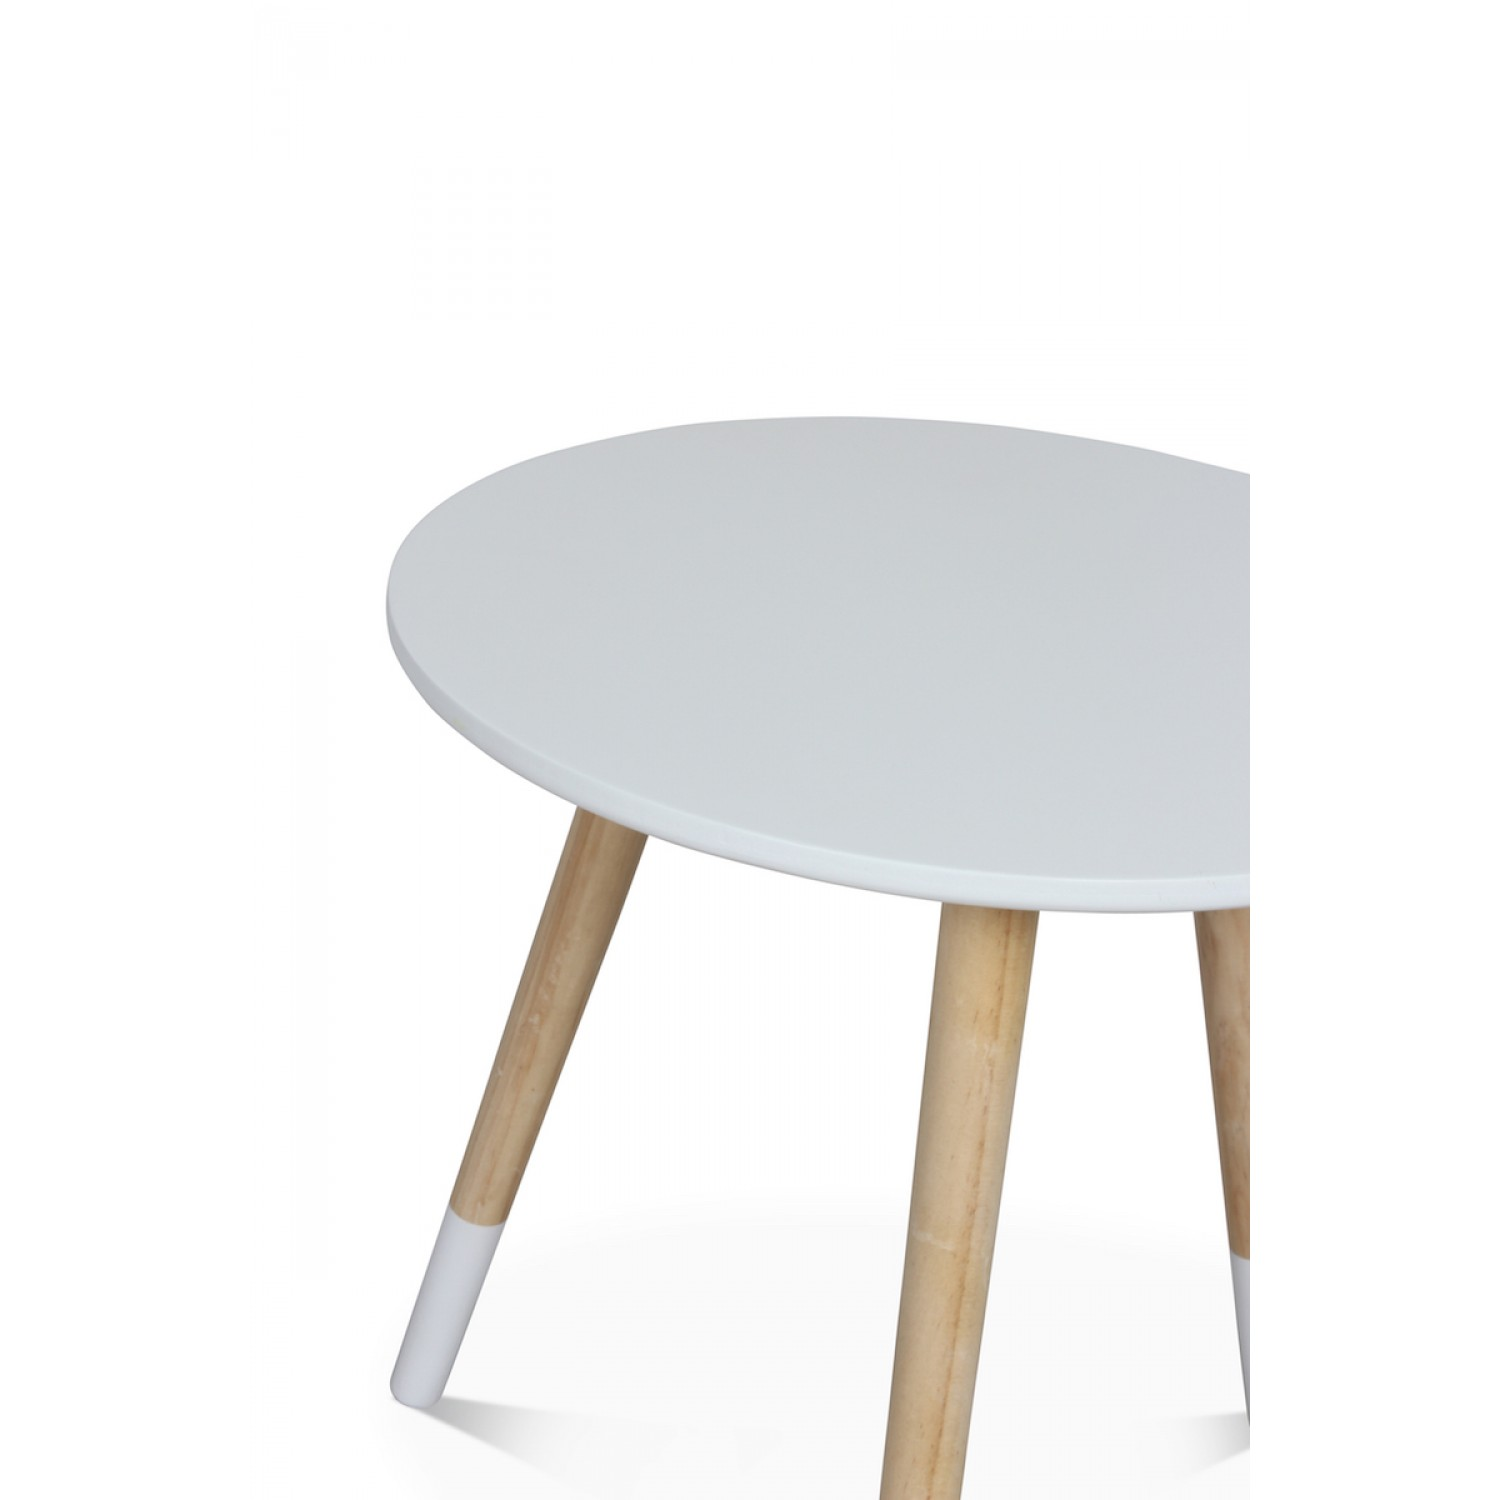 Table basse scandinave blanche gj kt diam tre 40 cm for Table scandinave blanche